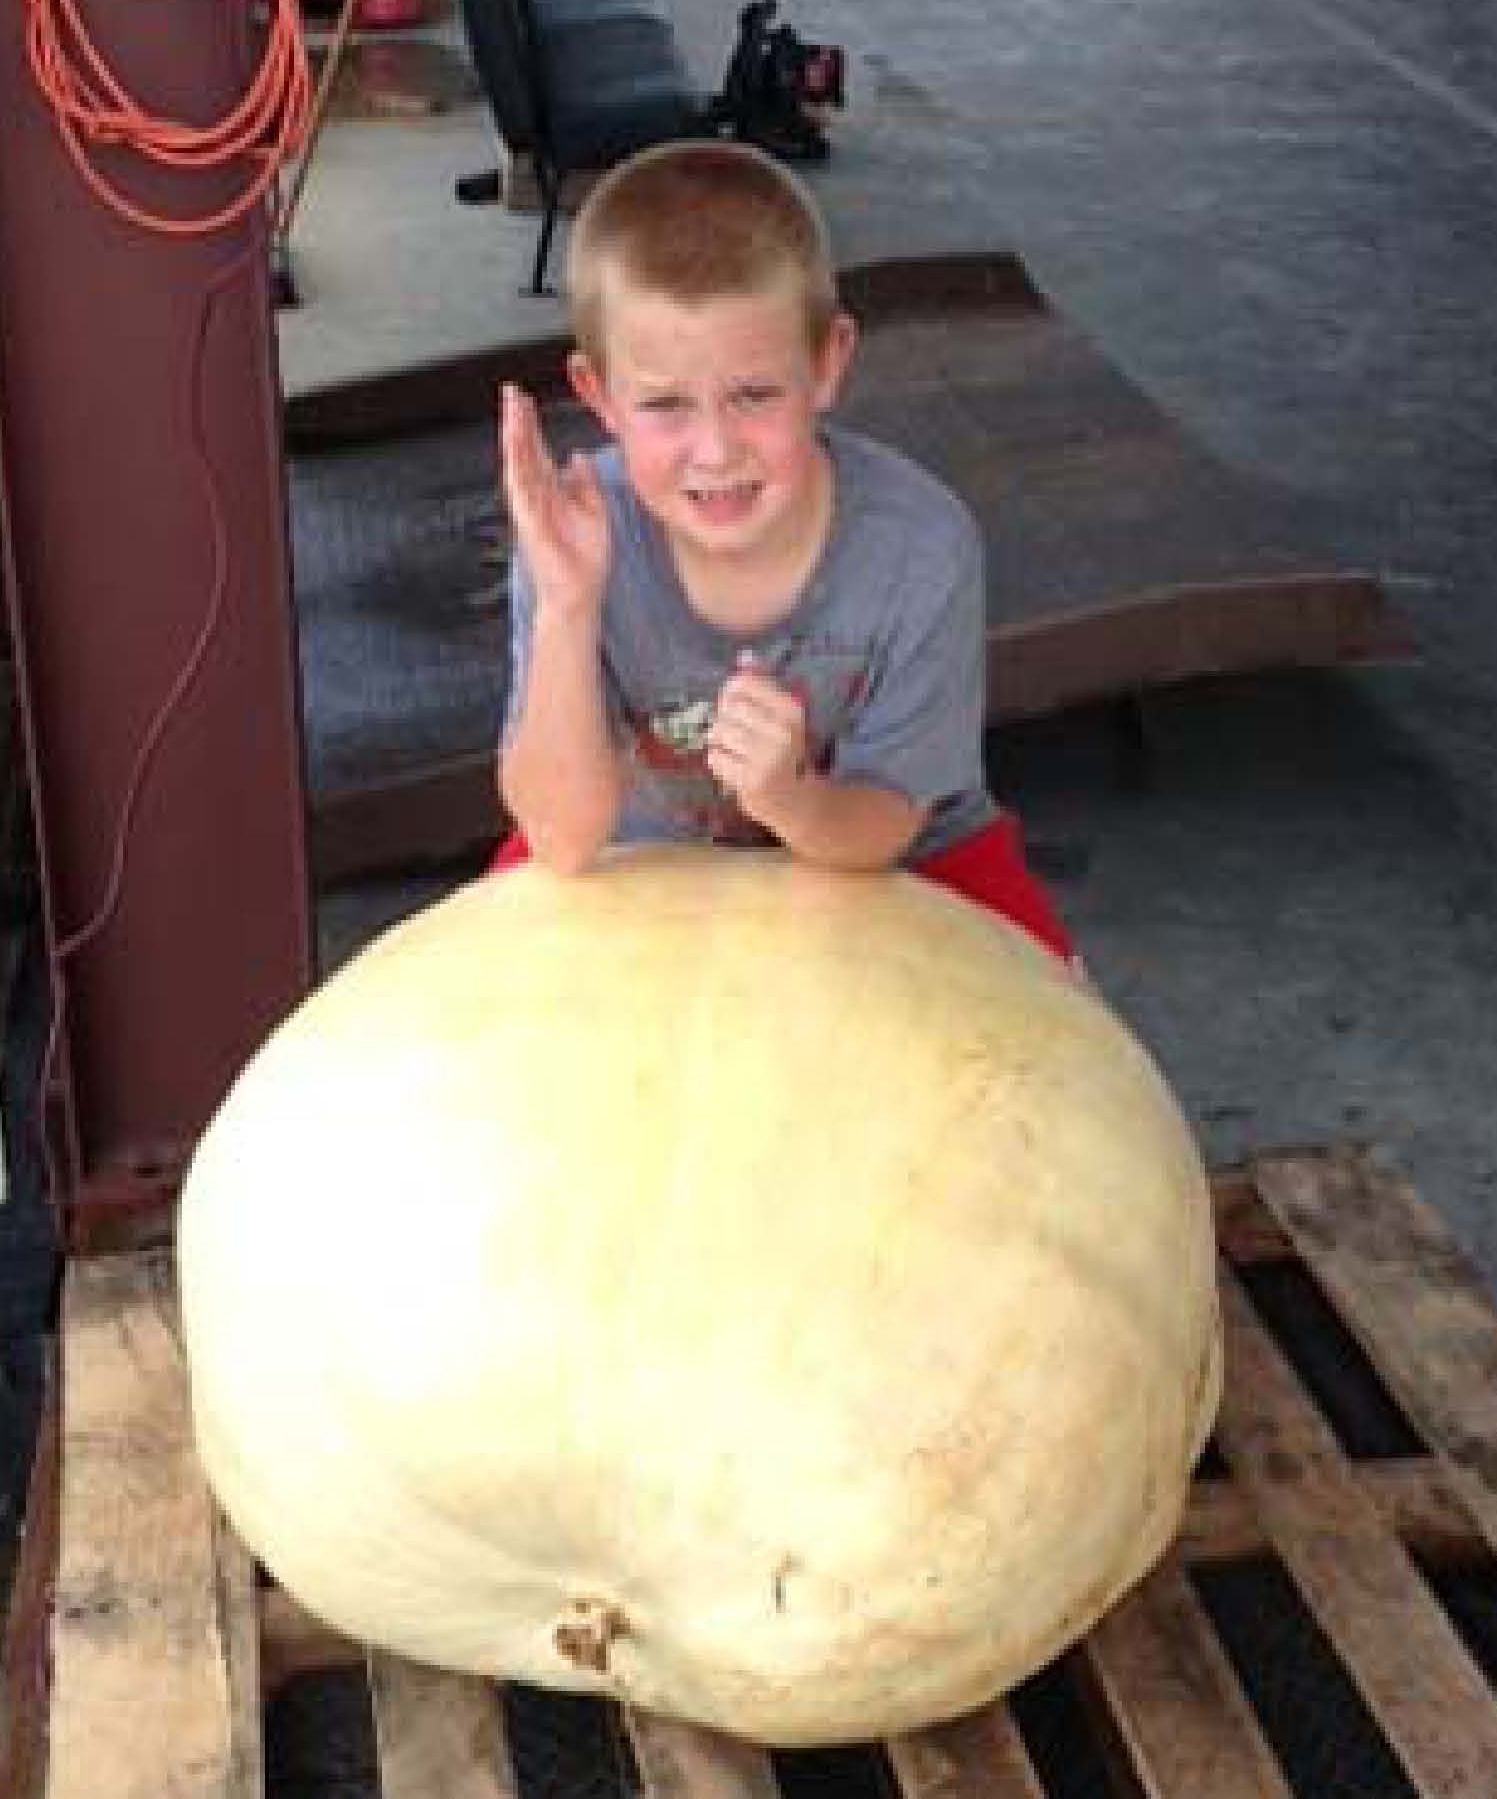 Jasper Utley took home second place in 2014 Georgia 4H Pumpkin Growing Contest with his 216 pound pumpkin.  This is Utley's second year taking home the second place prize for his pumpkin. Last year, his grew a 281-pound squash.